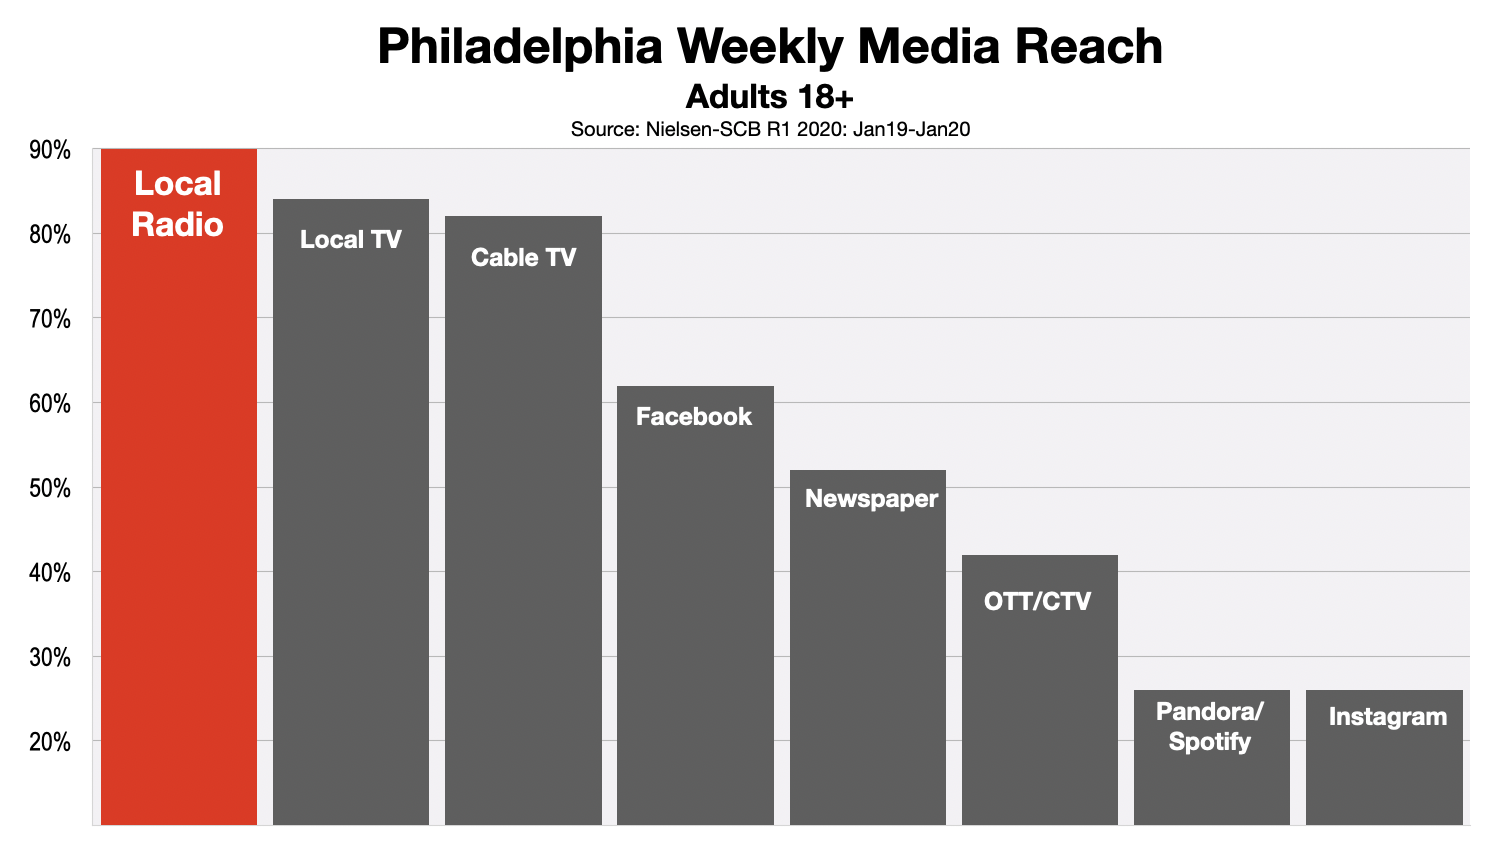 Advertising In Philadelphia Adult Media Reach 2020